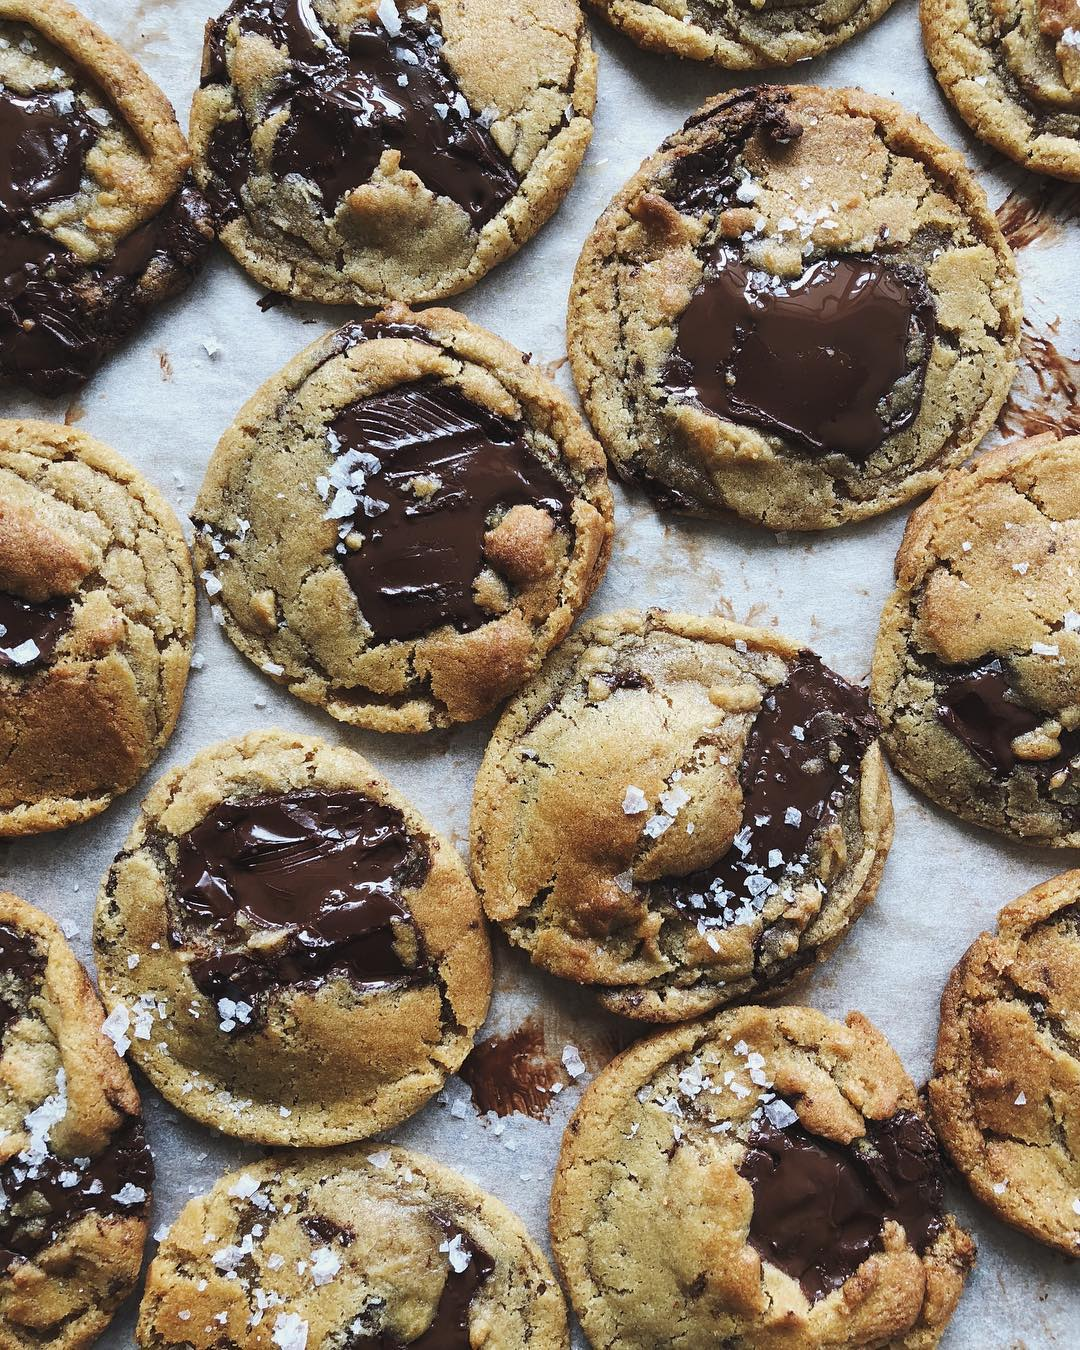 Chocolate Chip Cookies With Sea Salt by Thalia Ho